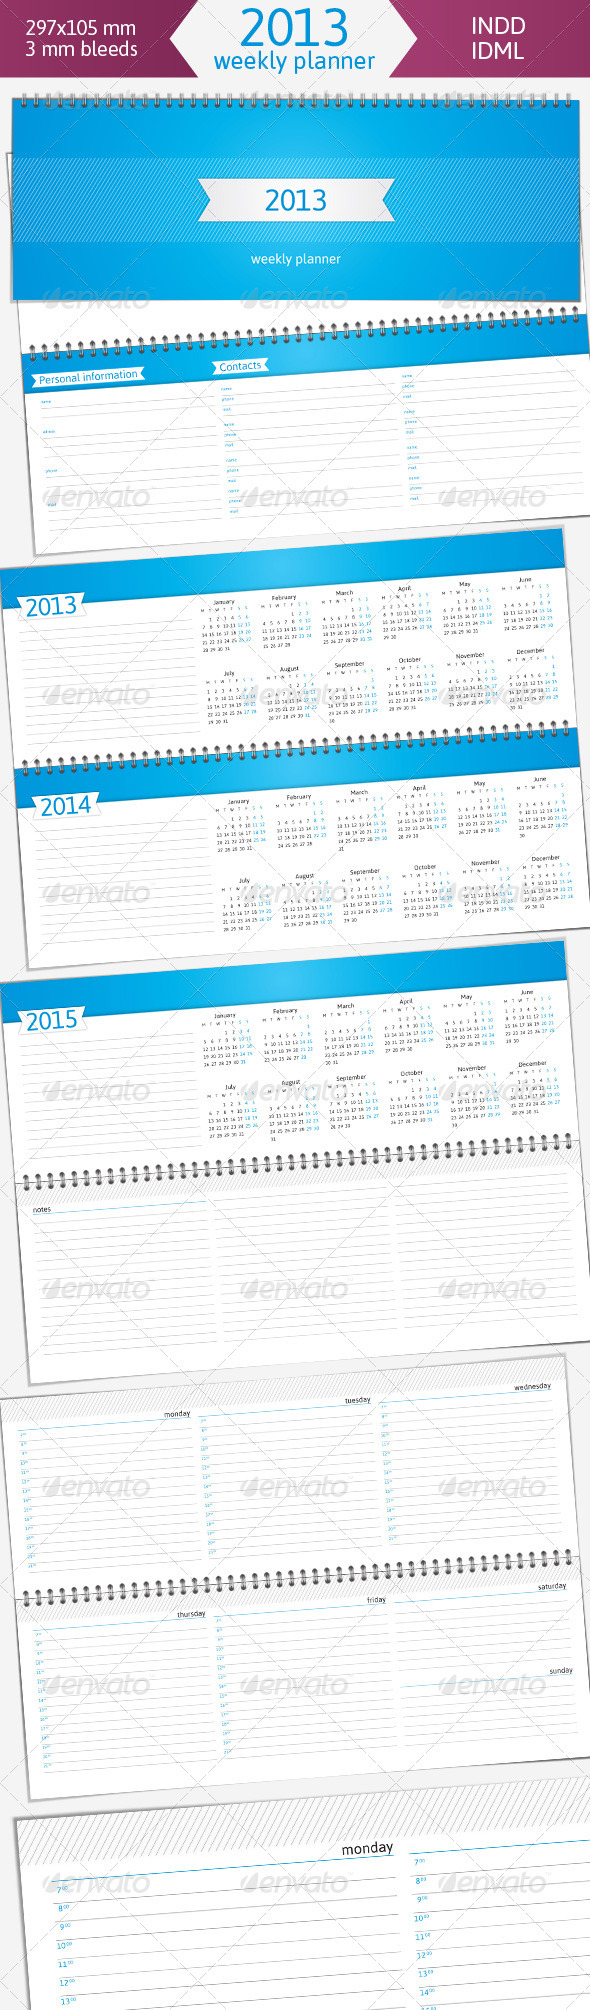 GraphicRiver 2013 Weekly Planner 3574515